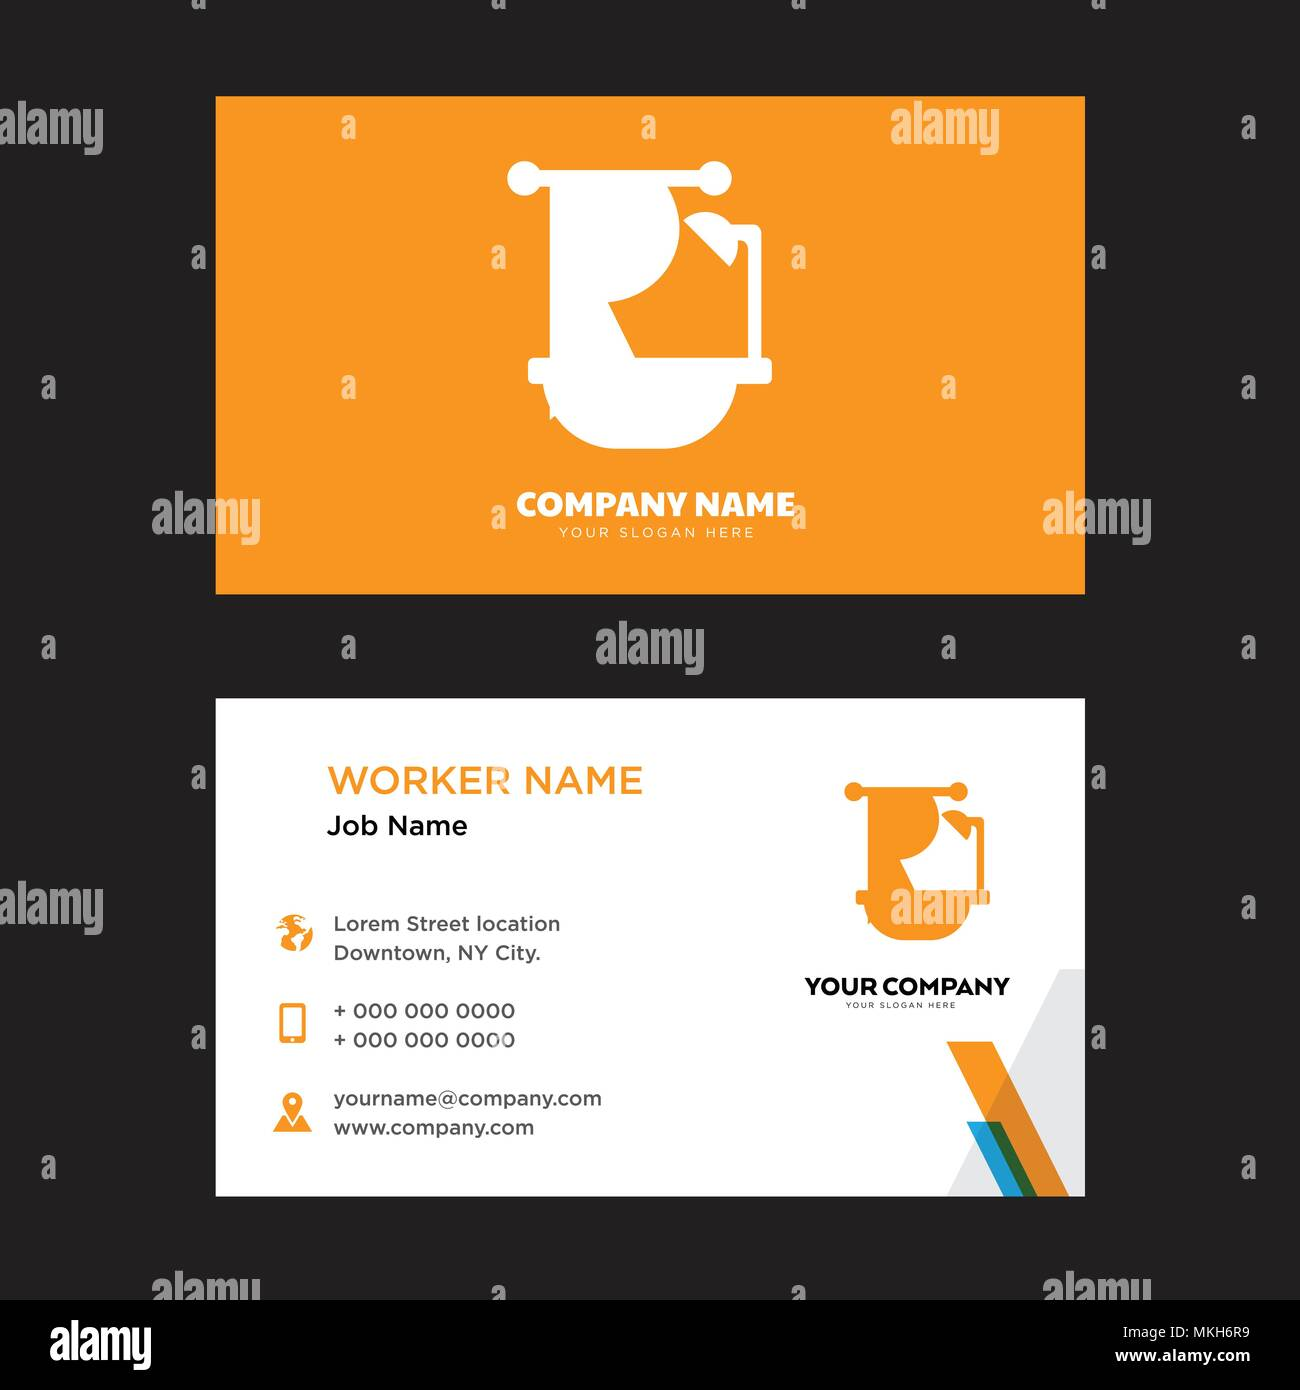 Bathtub business card design template, Visiting for your company ...